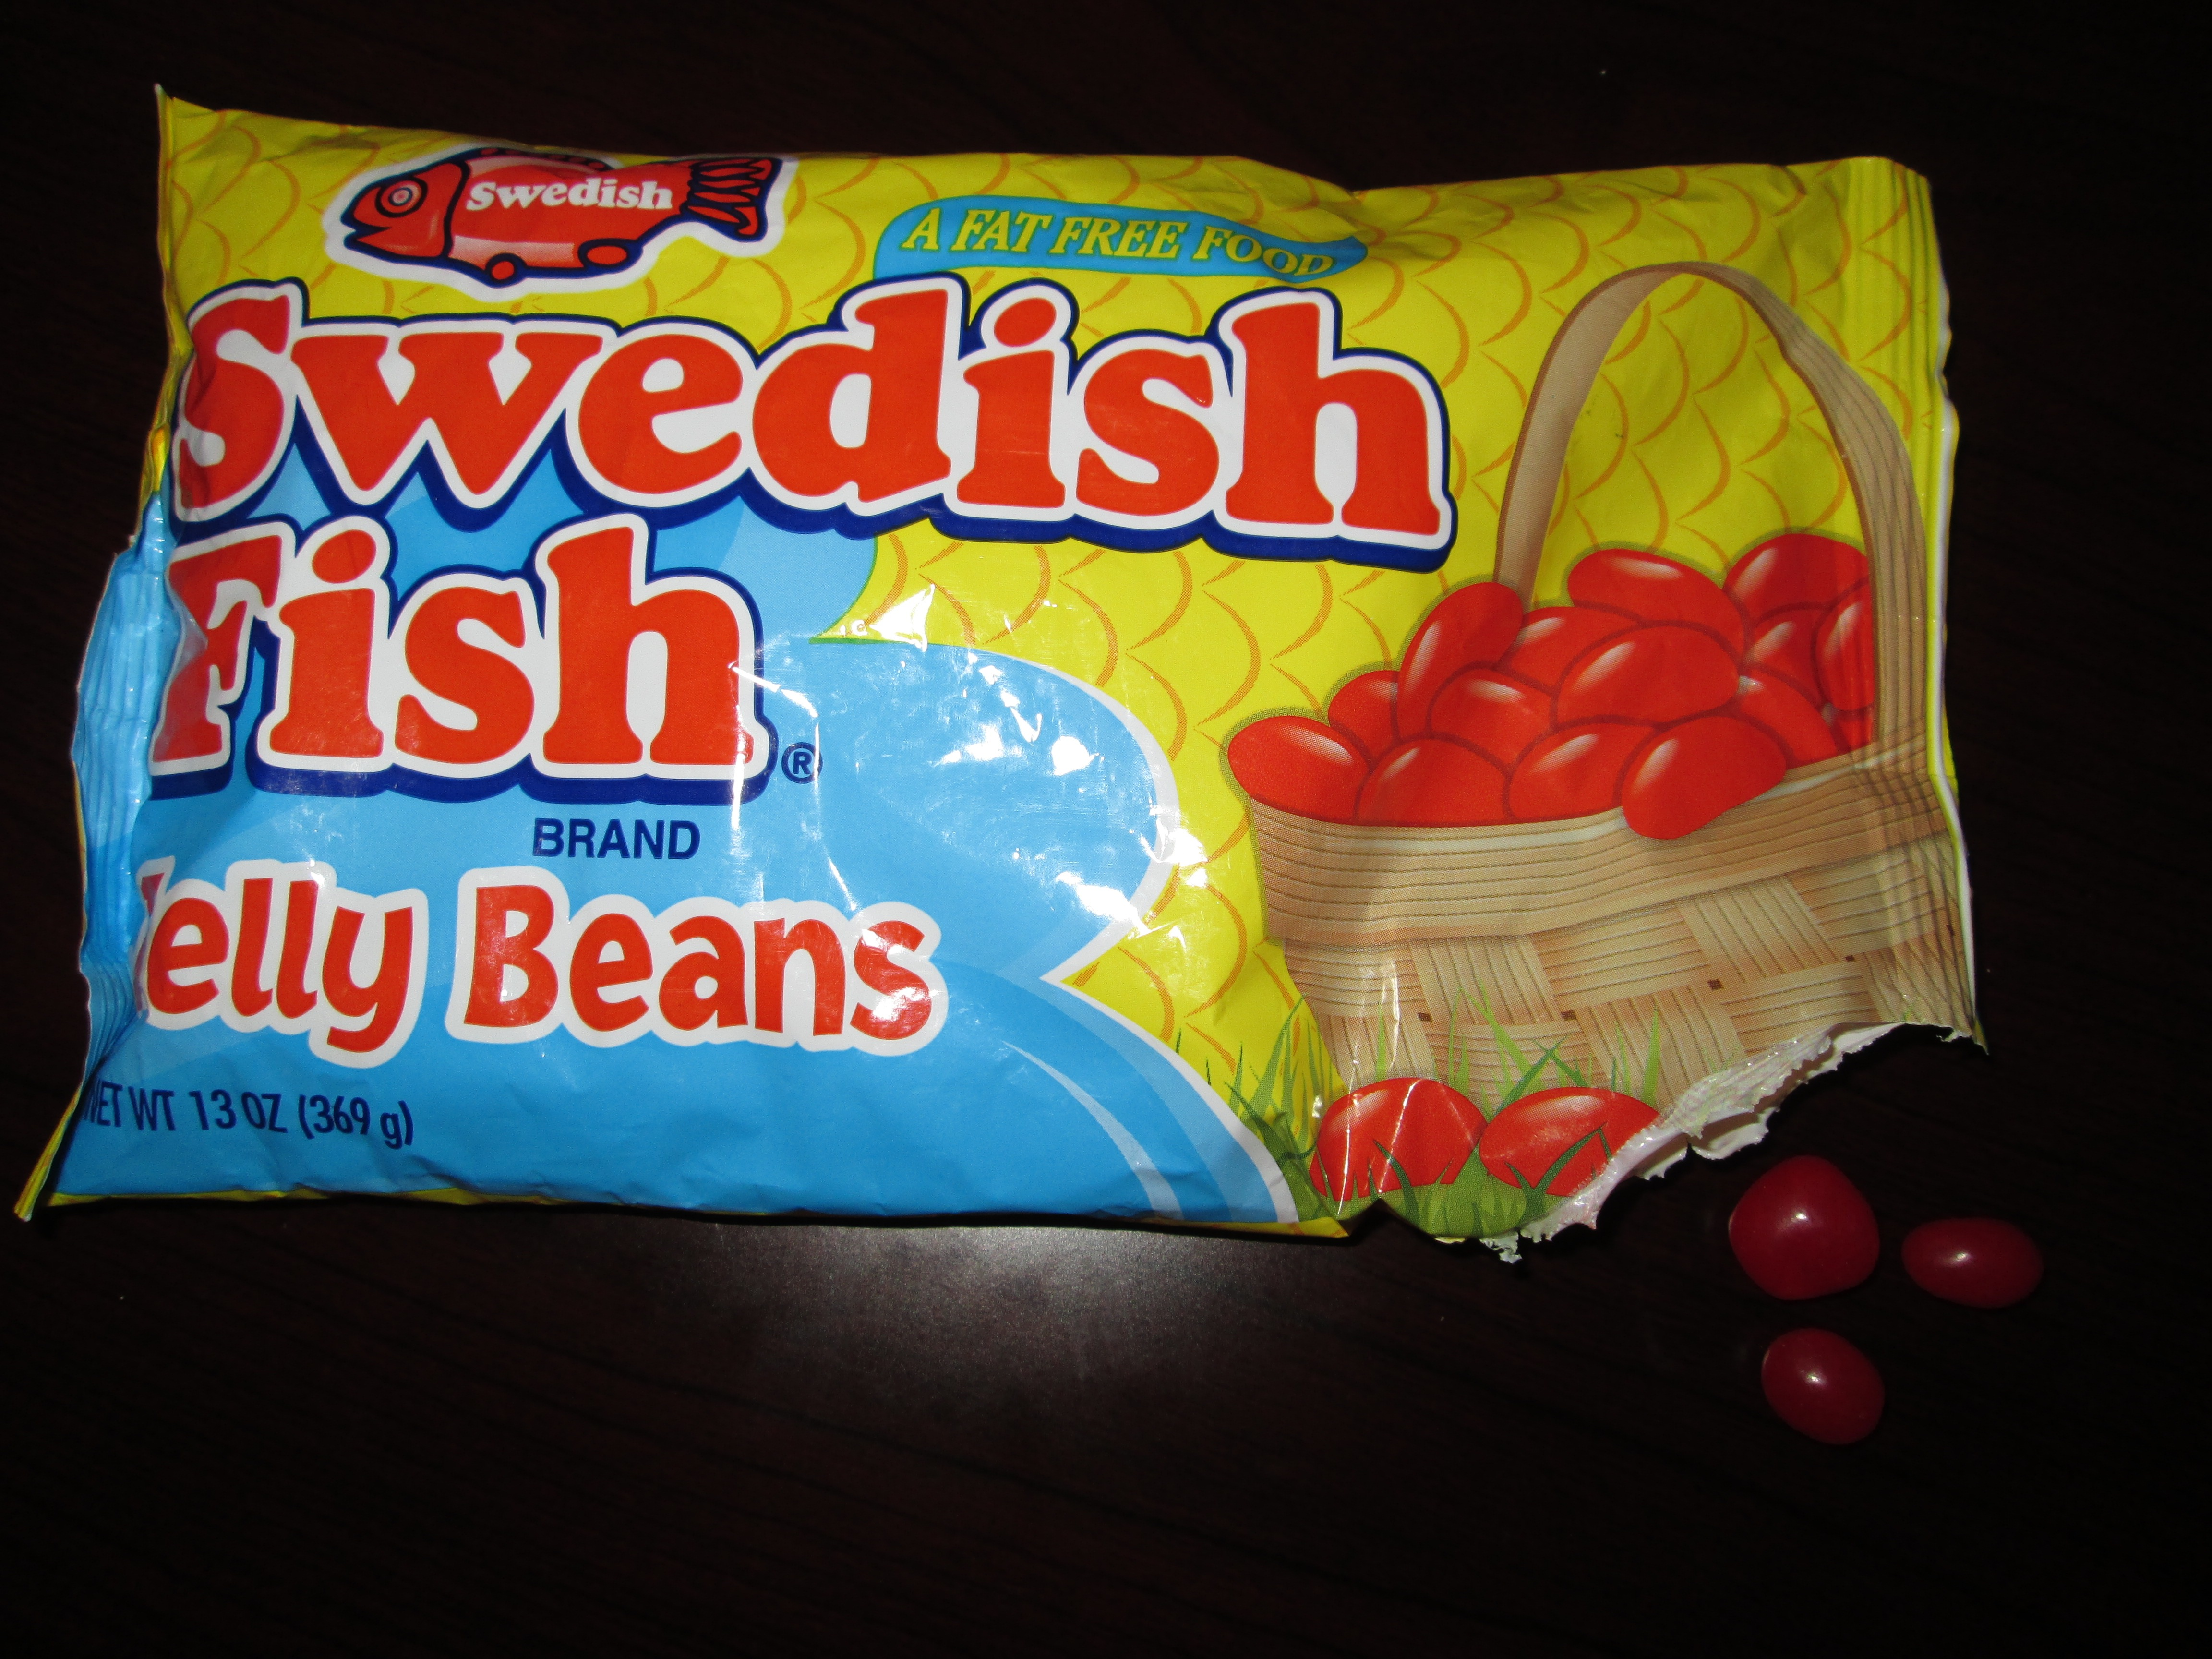 Img 0024 for Swedish fish jelly beans